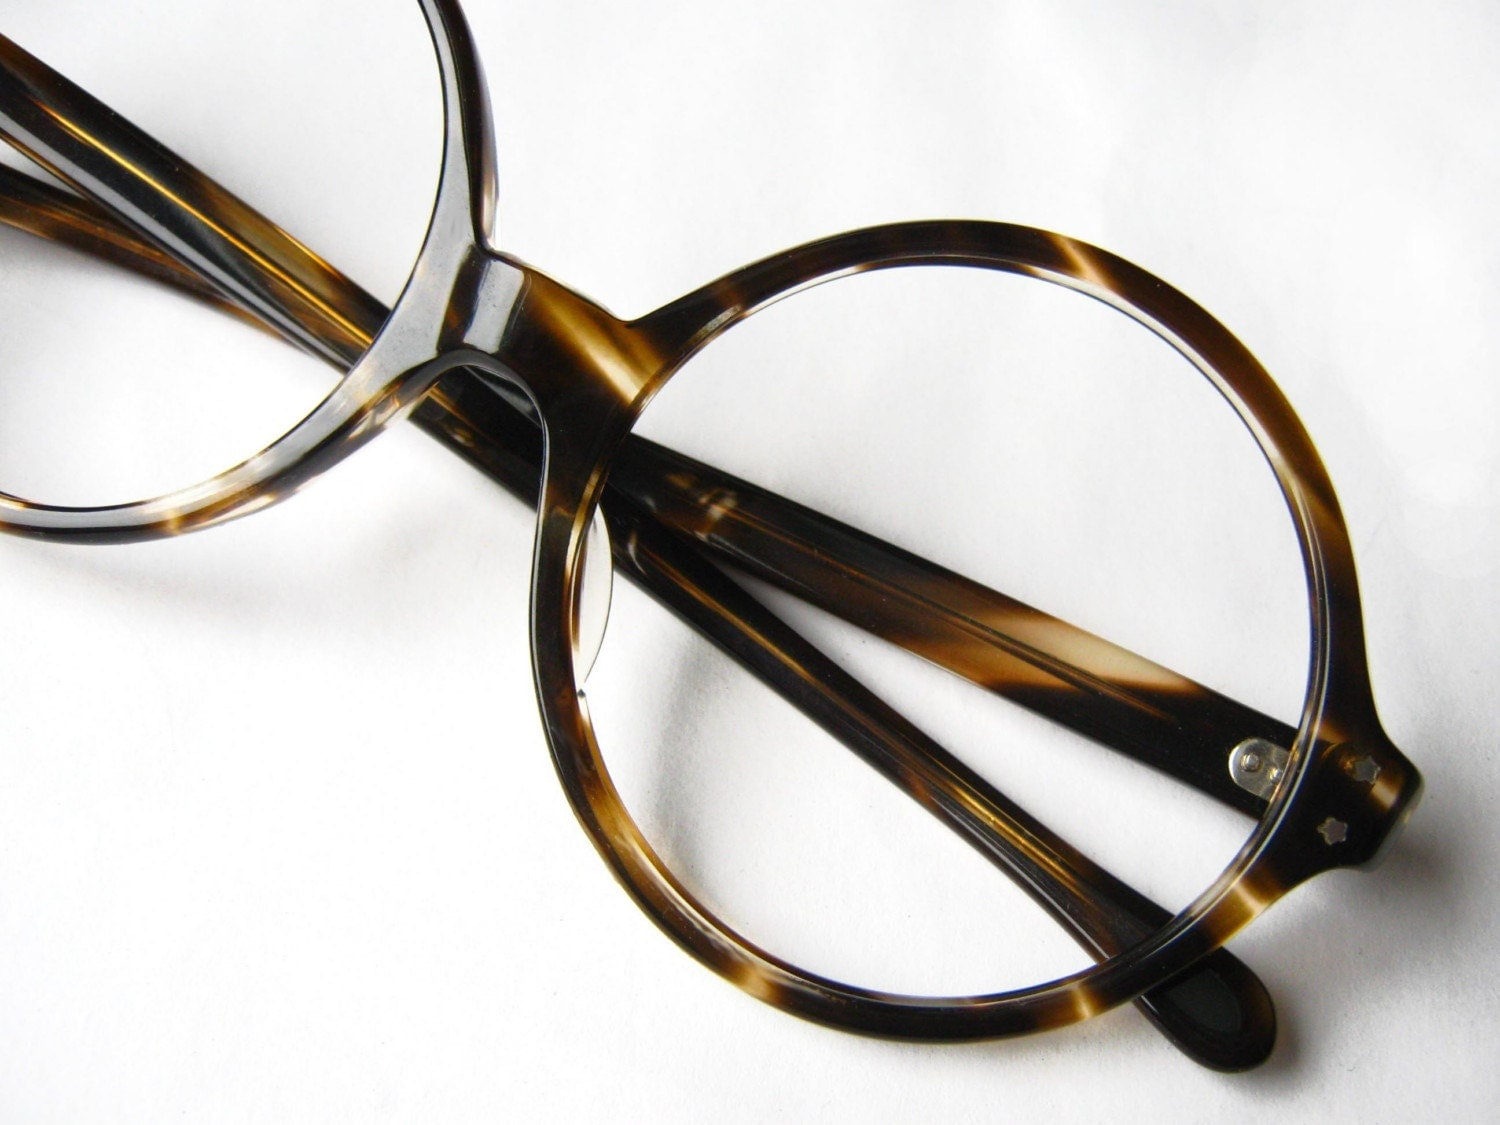 Eyeglass Frames And Lenses : ROUND EYEGLASS FRAMES - Eyeglasses Online